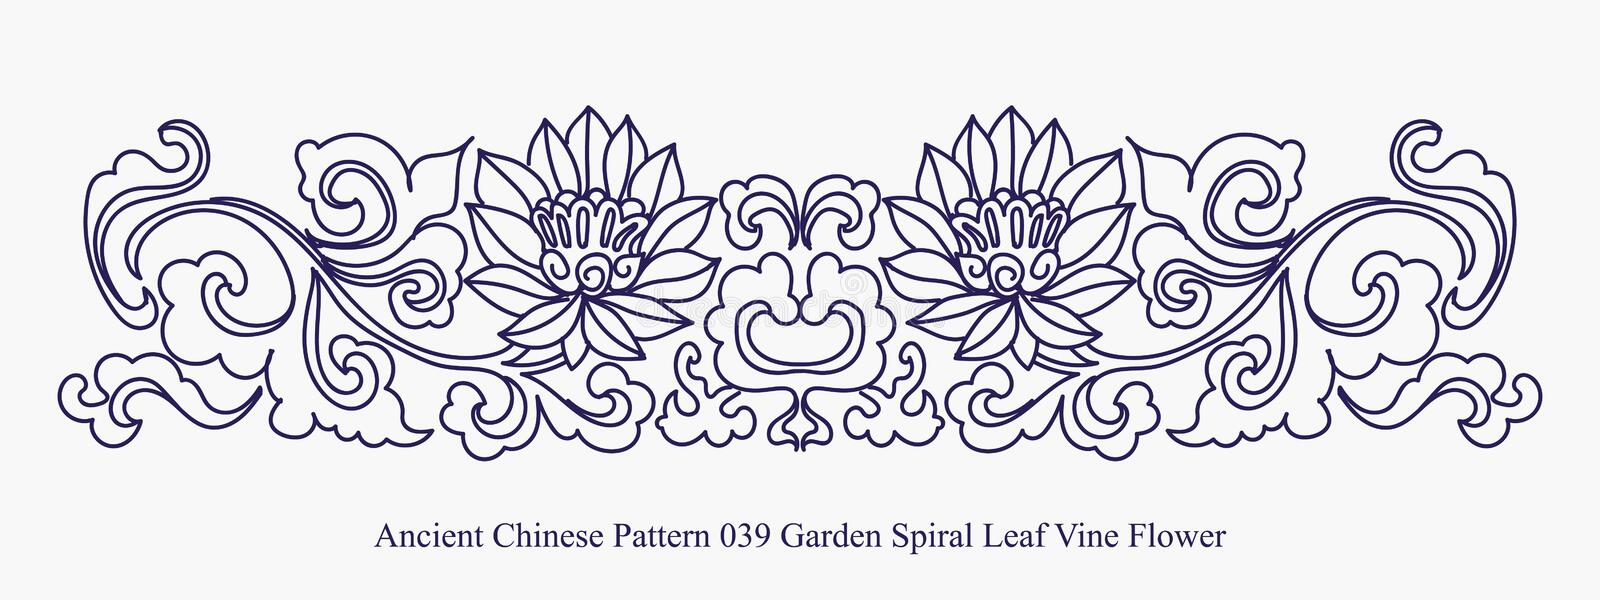 Ancient Chinese Pattern of Garden Spiral Leaf Vine Flower vector illustration